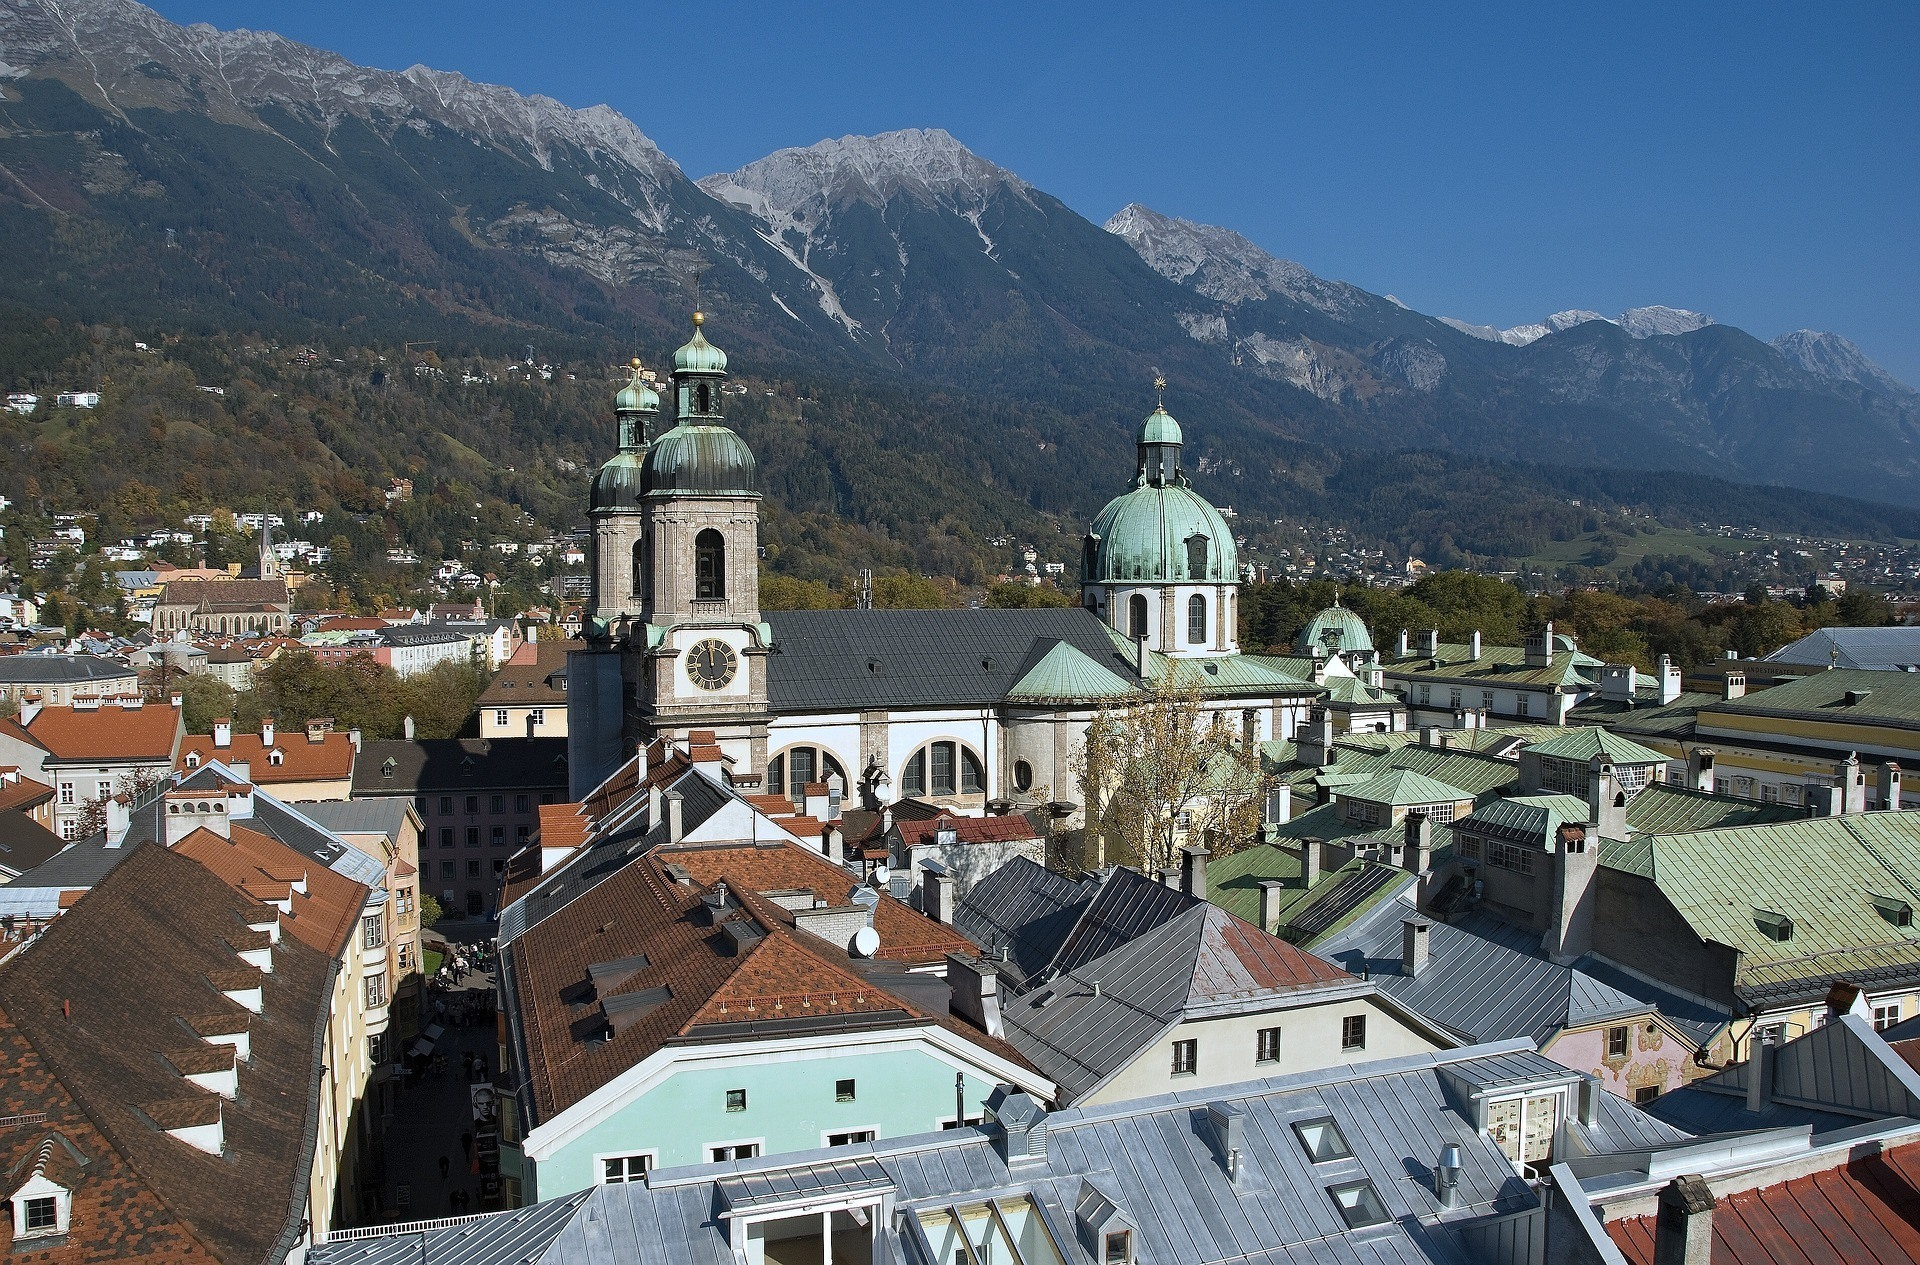 Innsbruck in Austria Photo Lichtenfels on Pixabay